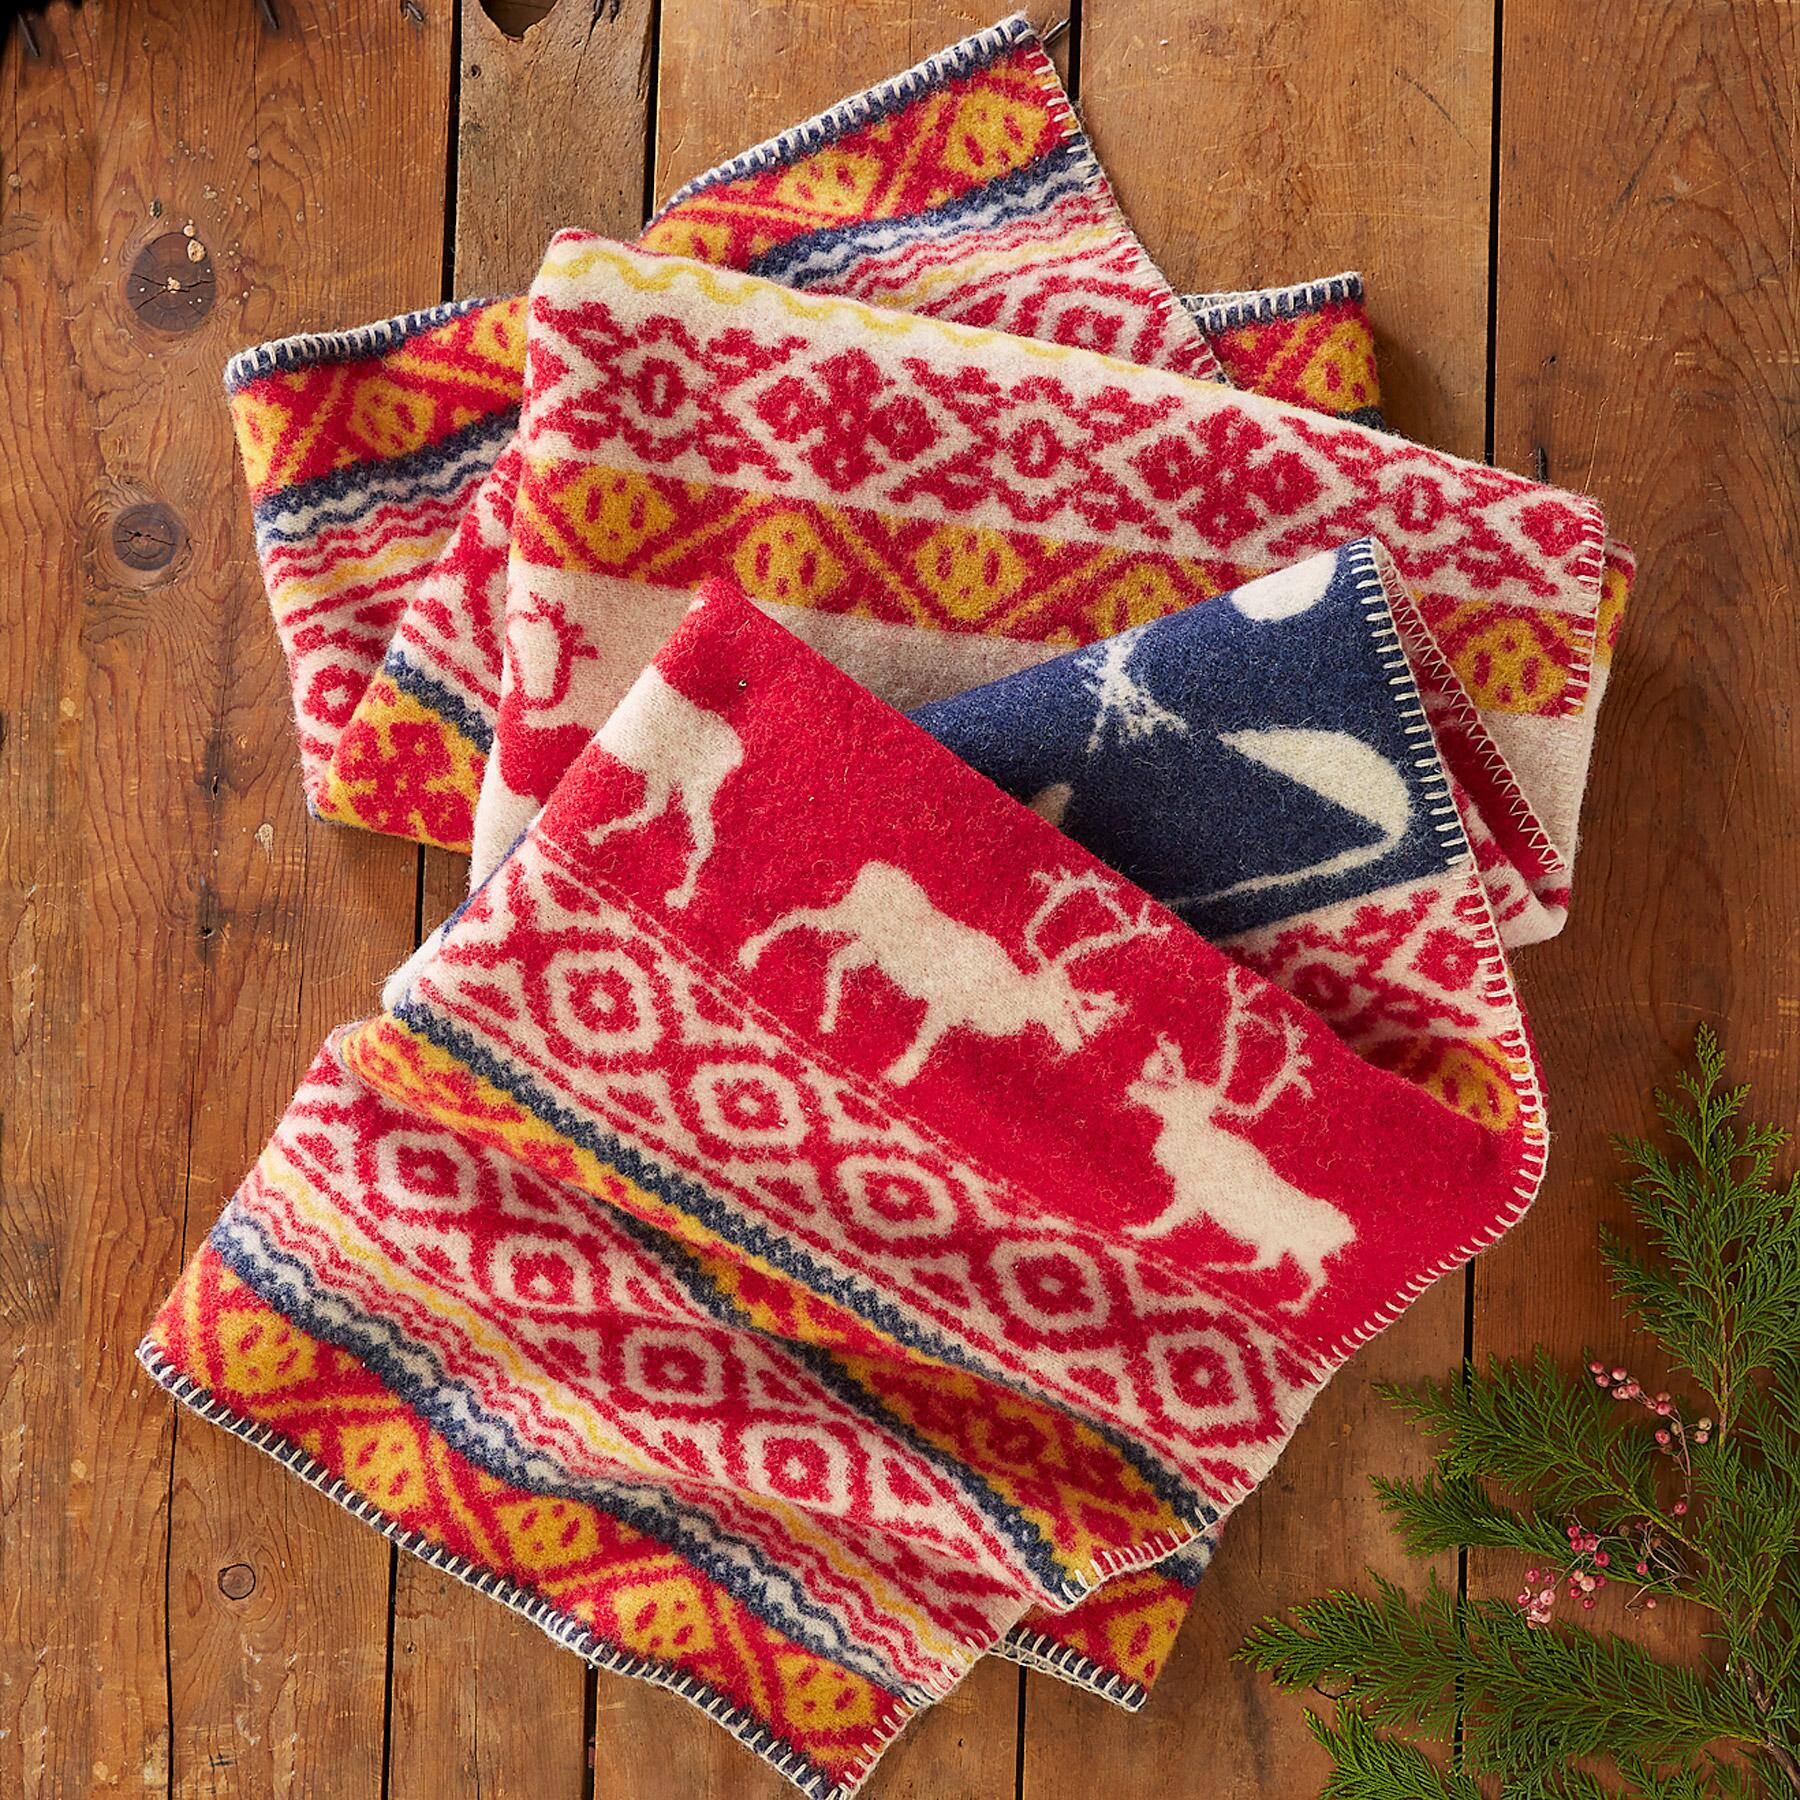 Lapland Throw - Sundance Catalog Home Decor + A Few of My Artisan Favorite Things!